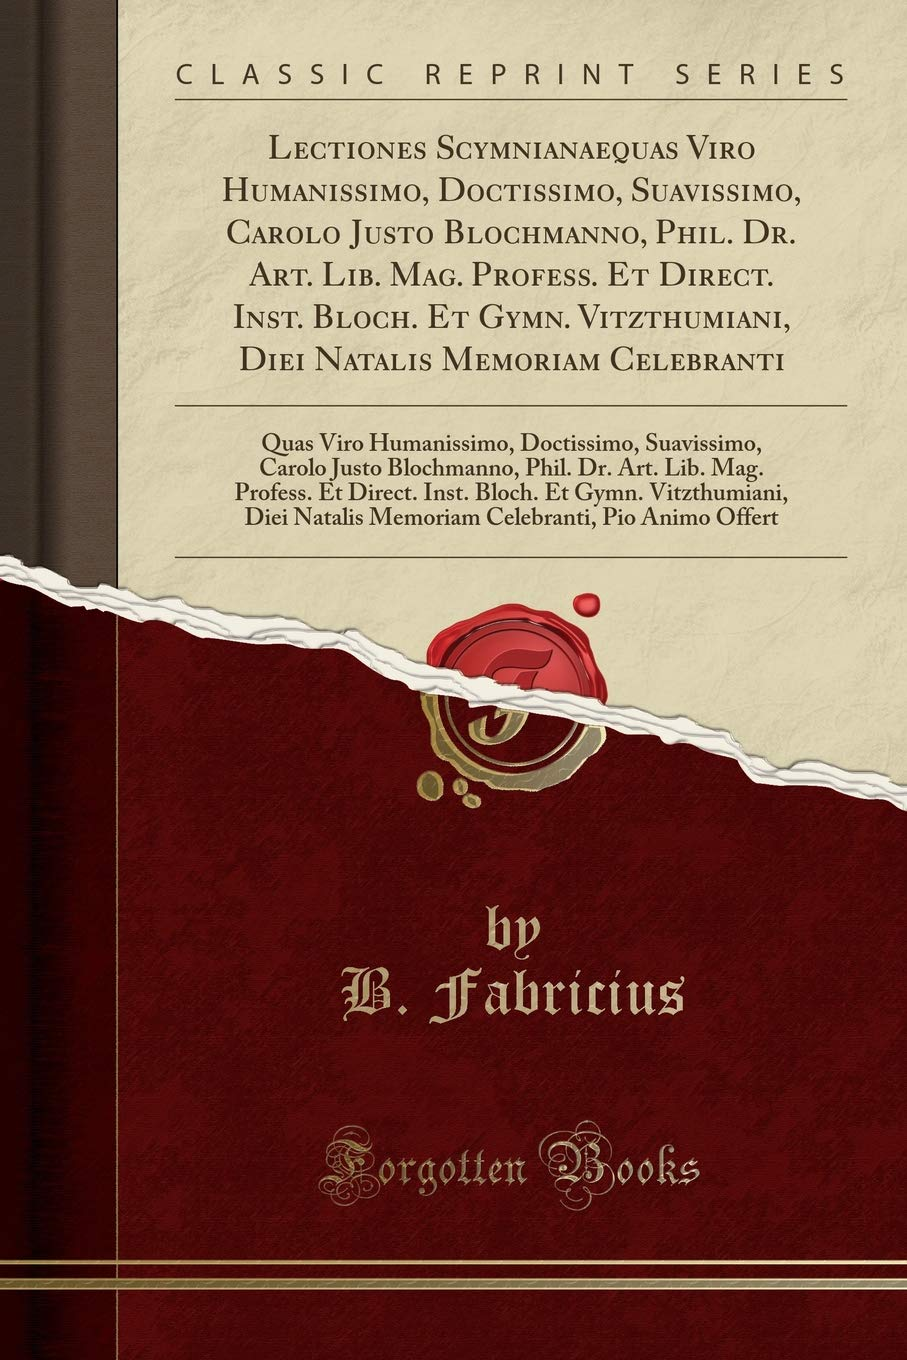 Lectiones Scymnianaequas Viro Humanissimo, Doctissimo, Suavissimo, Carolo Justo Blochmanno, Phil. Dr. Art. Lib. Mag. Profess. Et Direct. Inst. Bloch. ... Natalis Memoriam Celebranti (Latin Edition) ebook